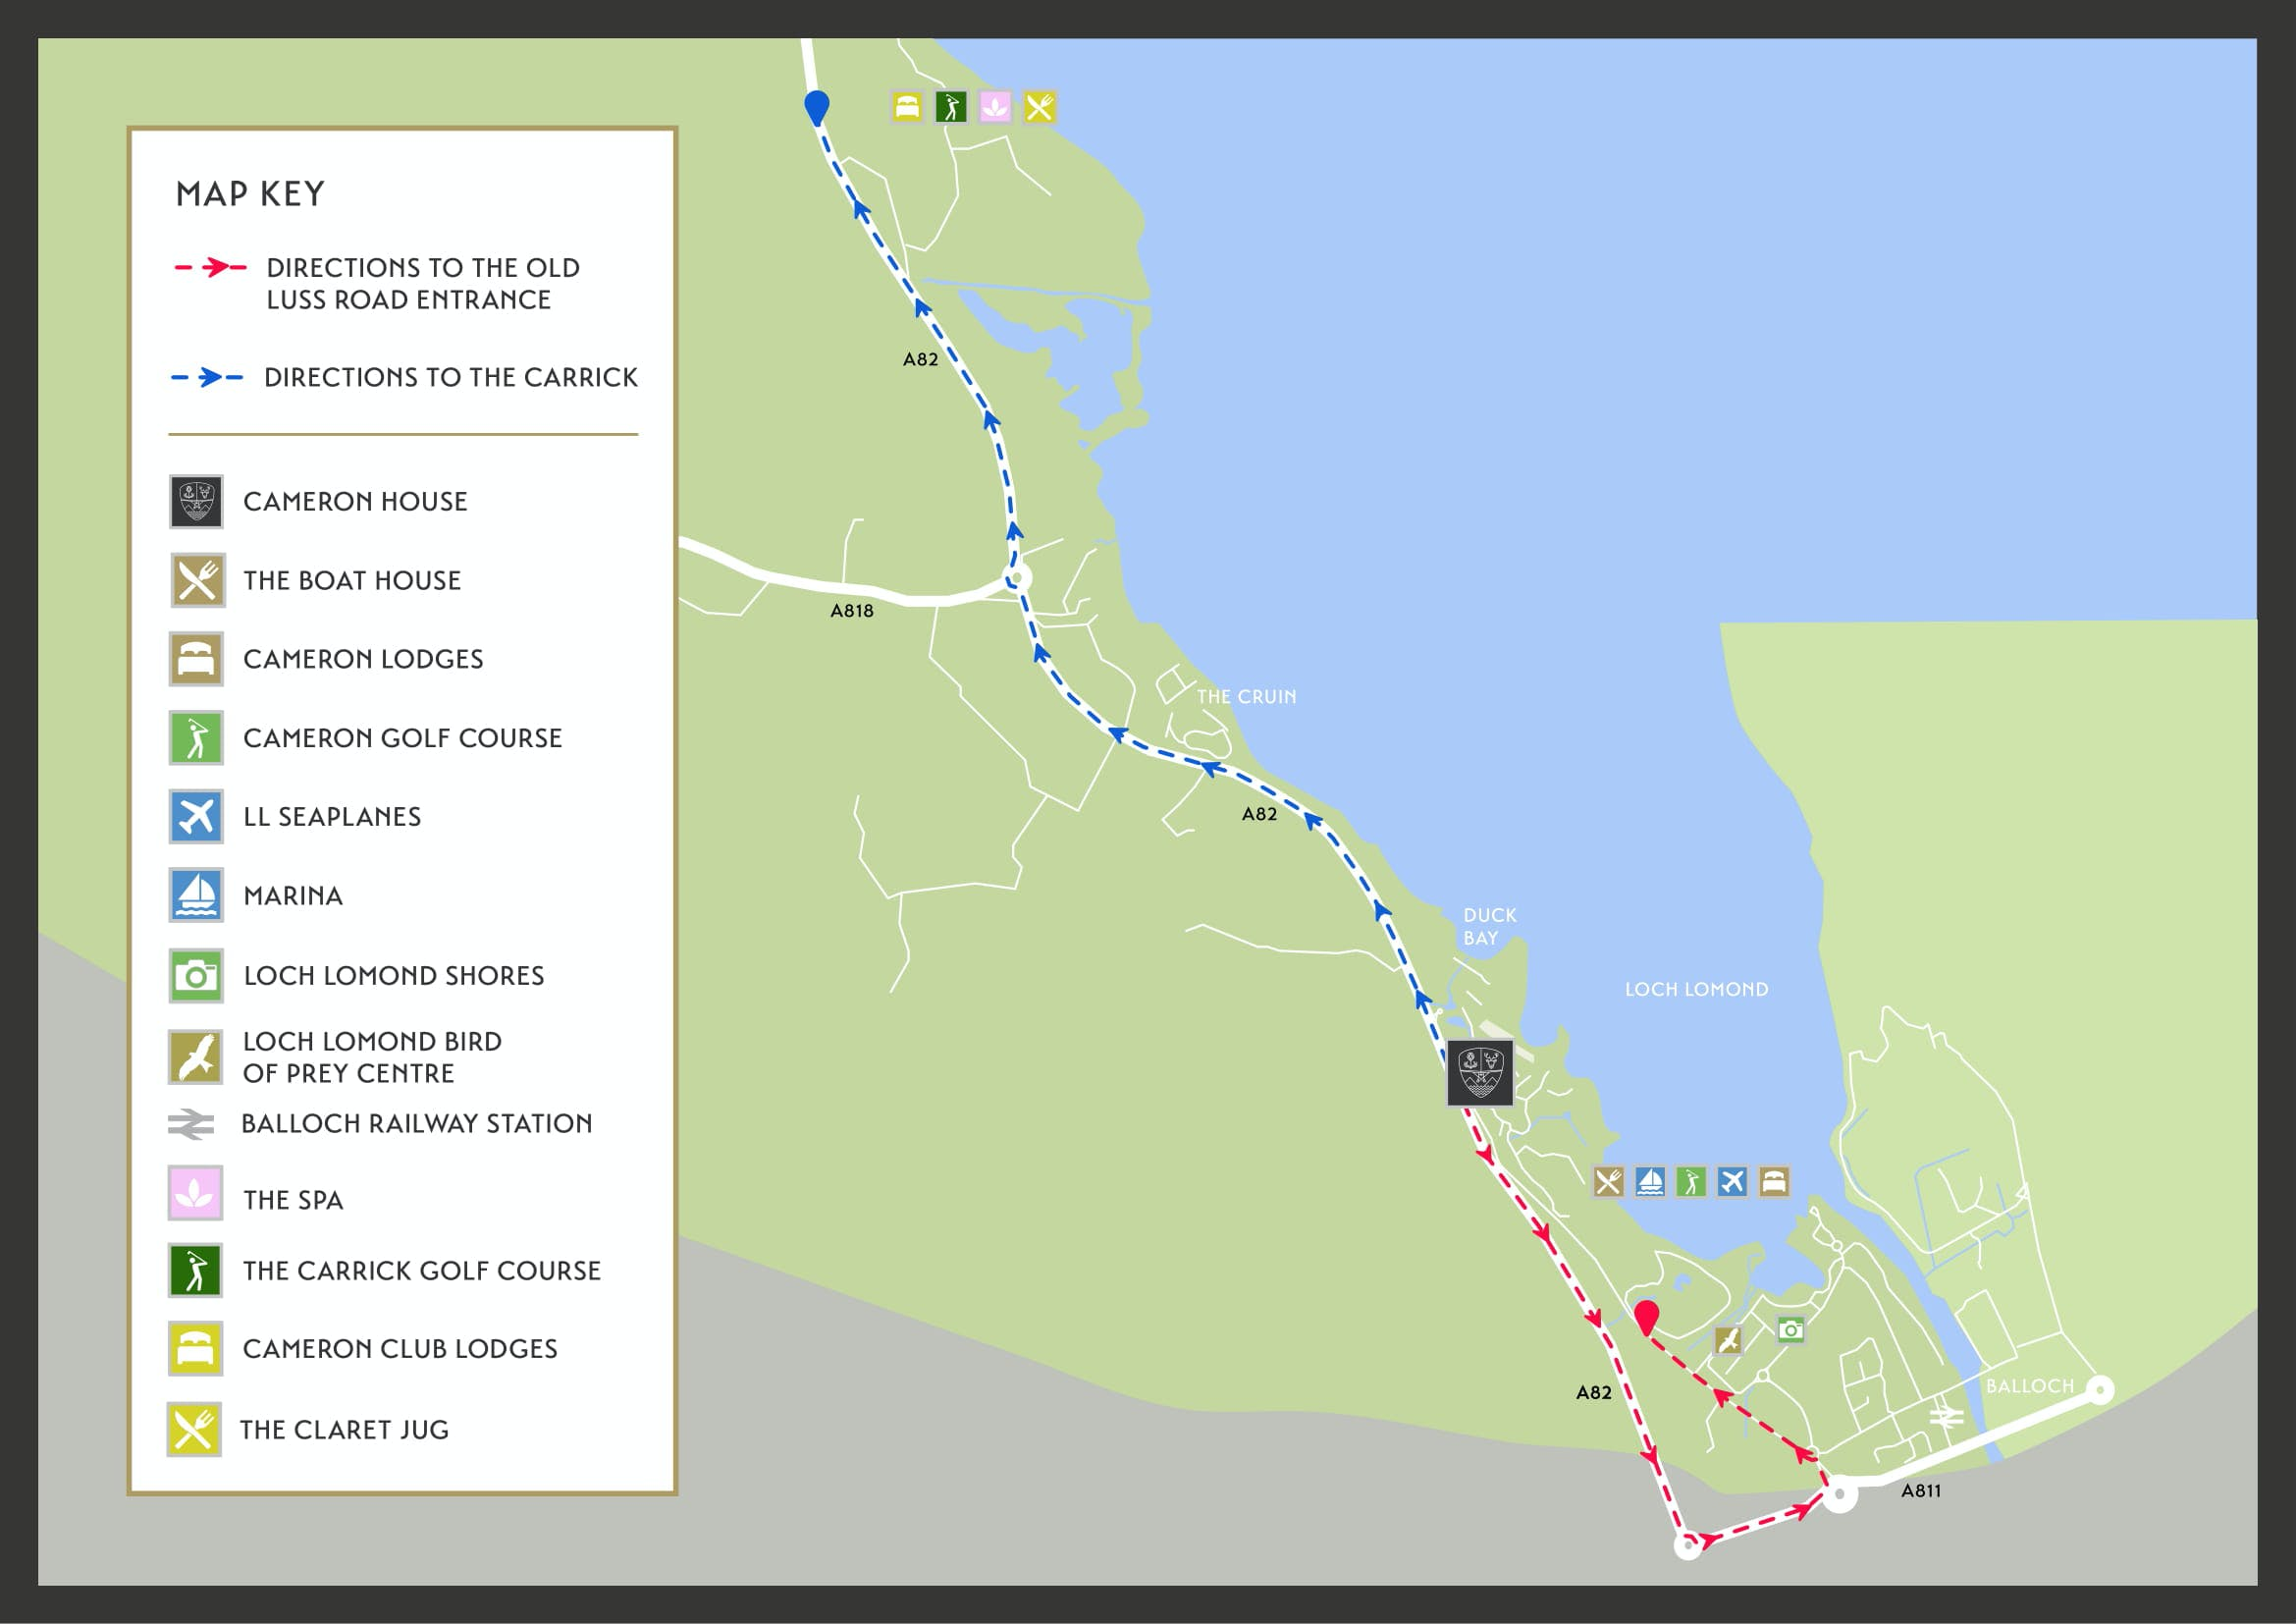 Map directions to Cameron House resort facilities